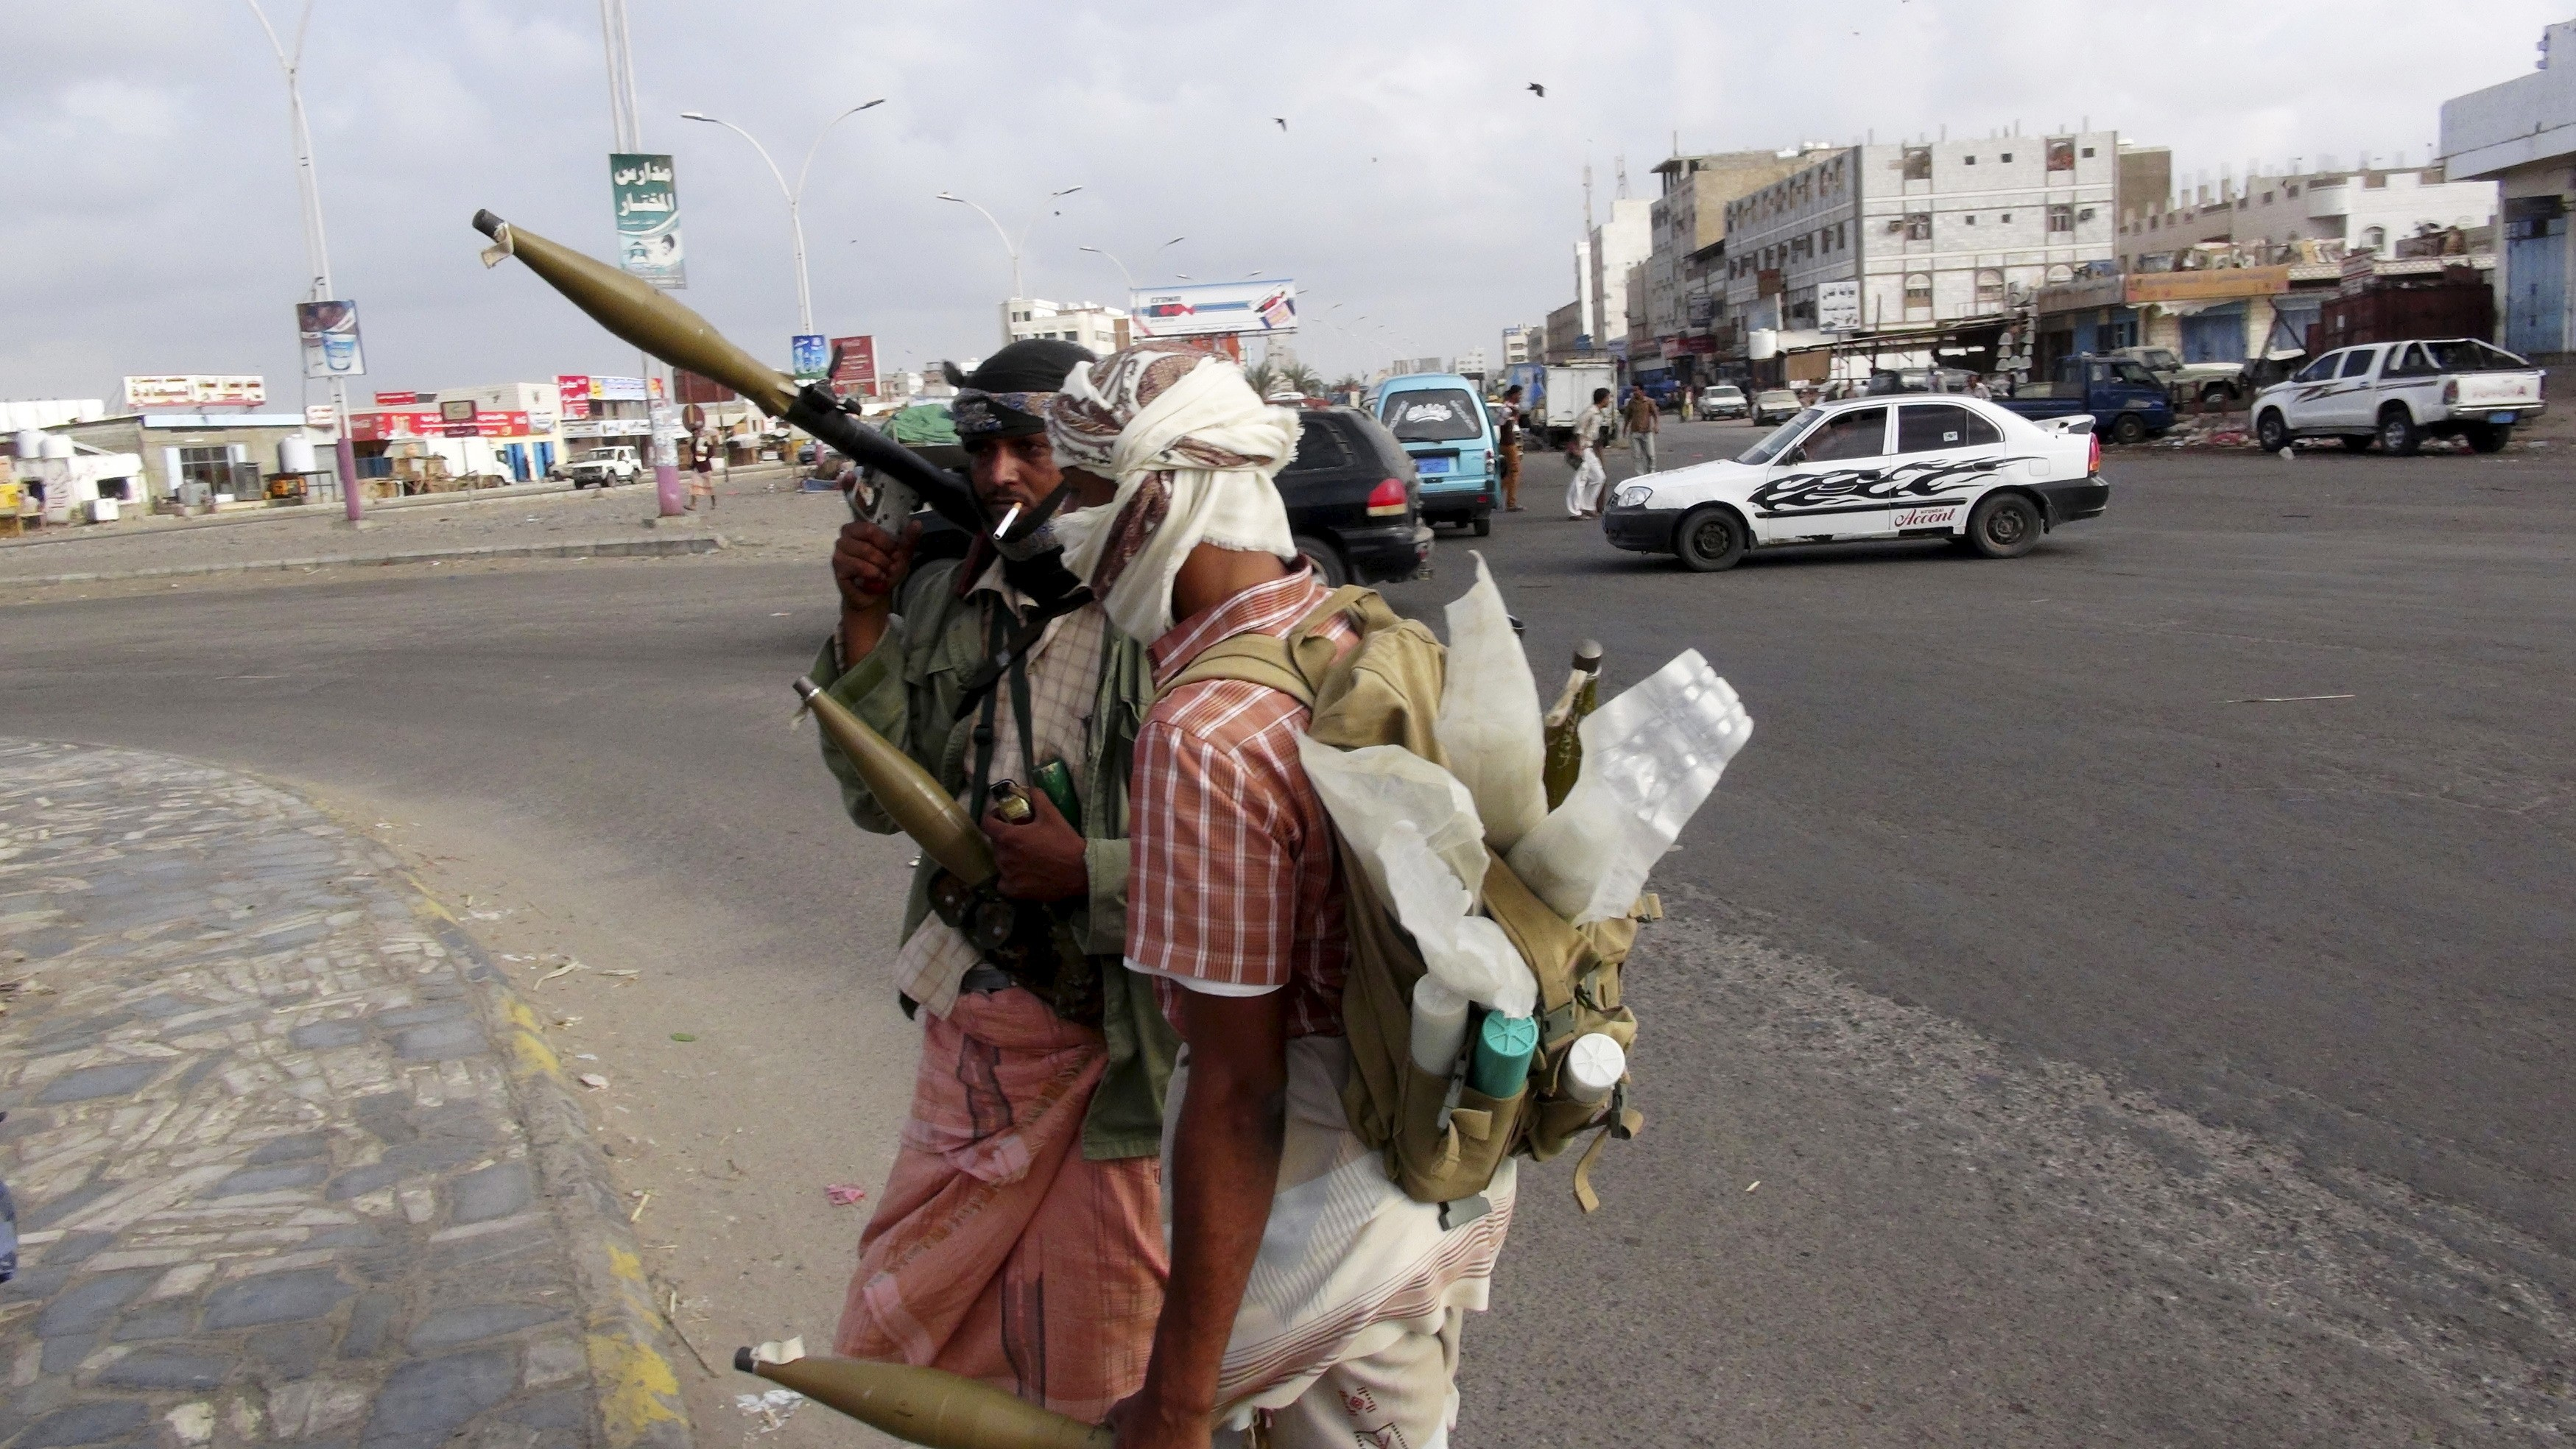 Yemen's Civil Conflict Deepens Further as Fighting Breaks Out in Aden